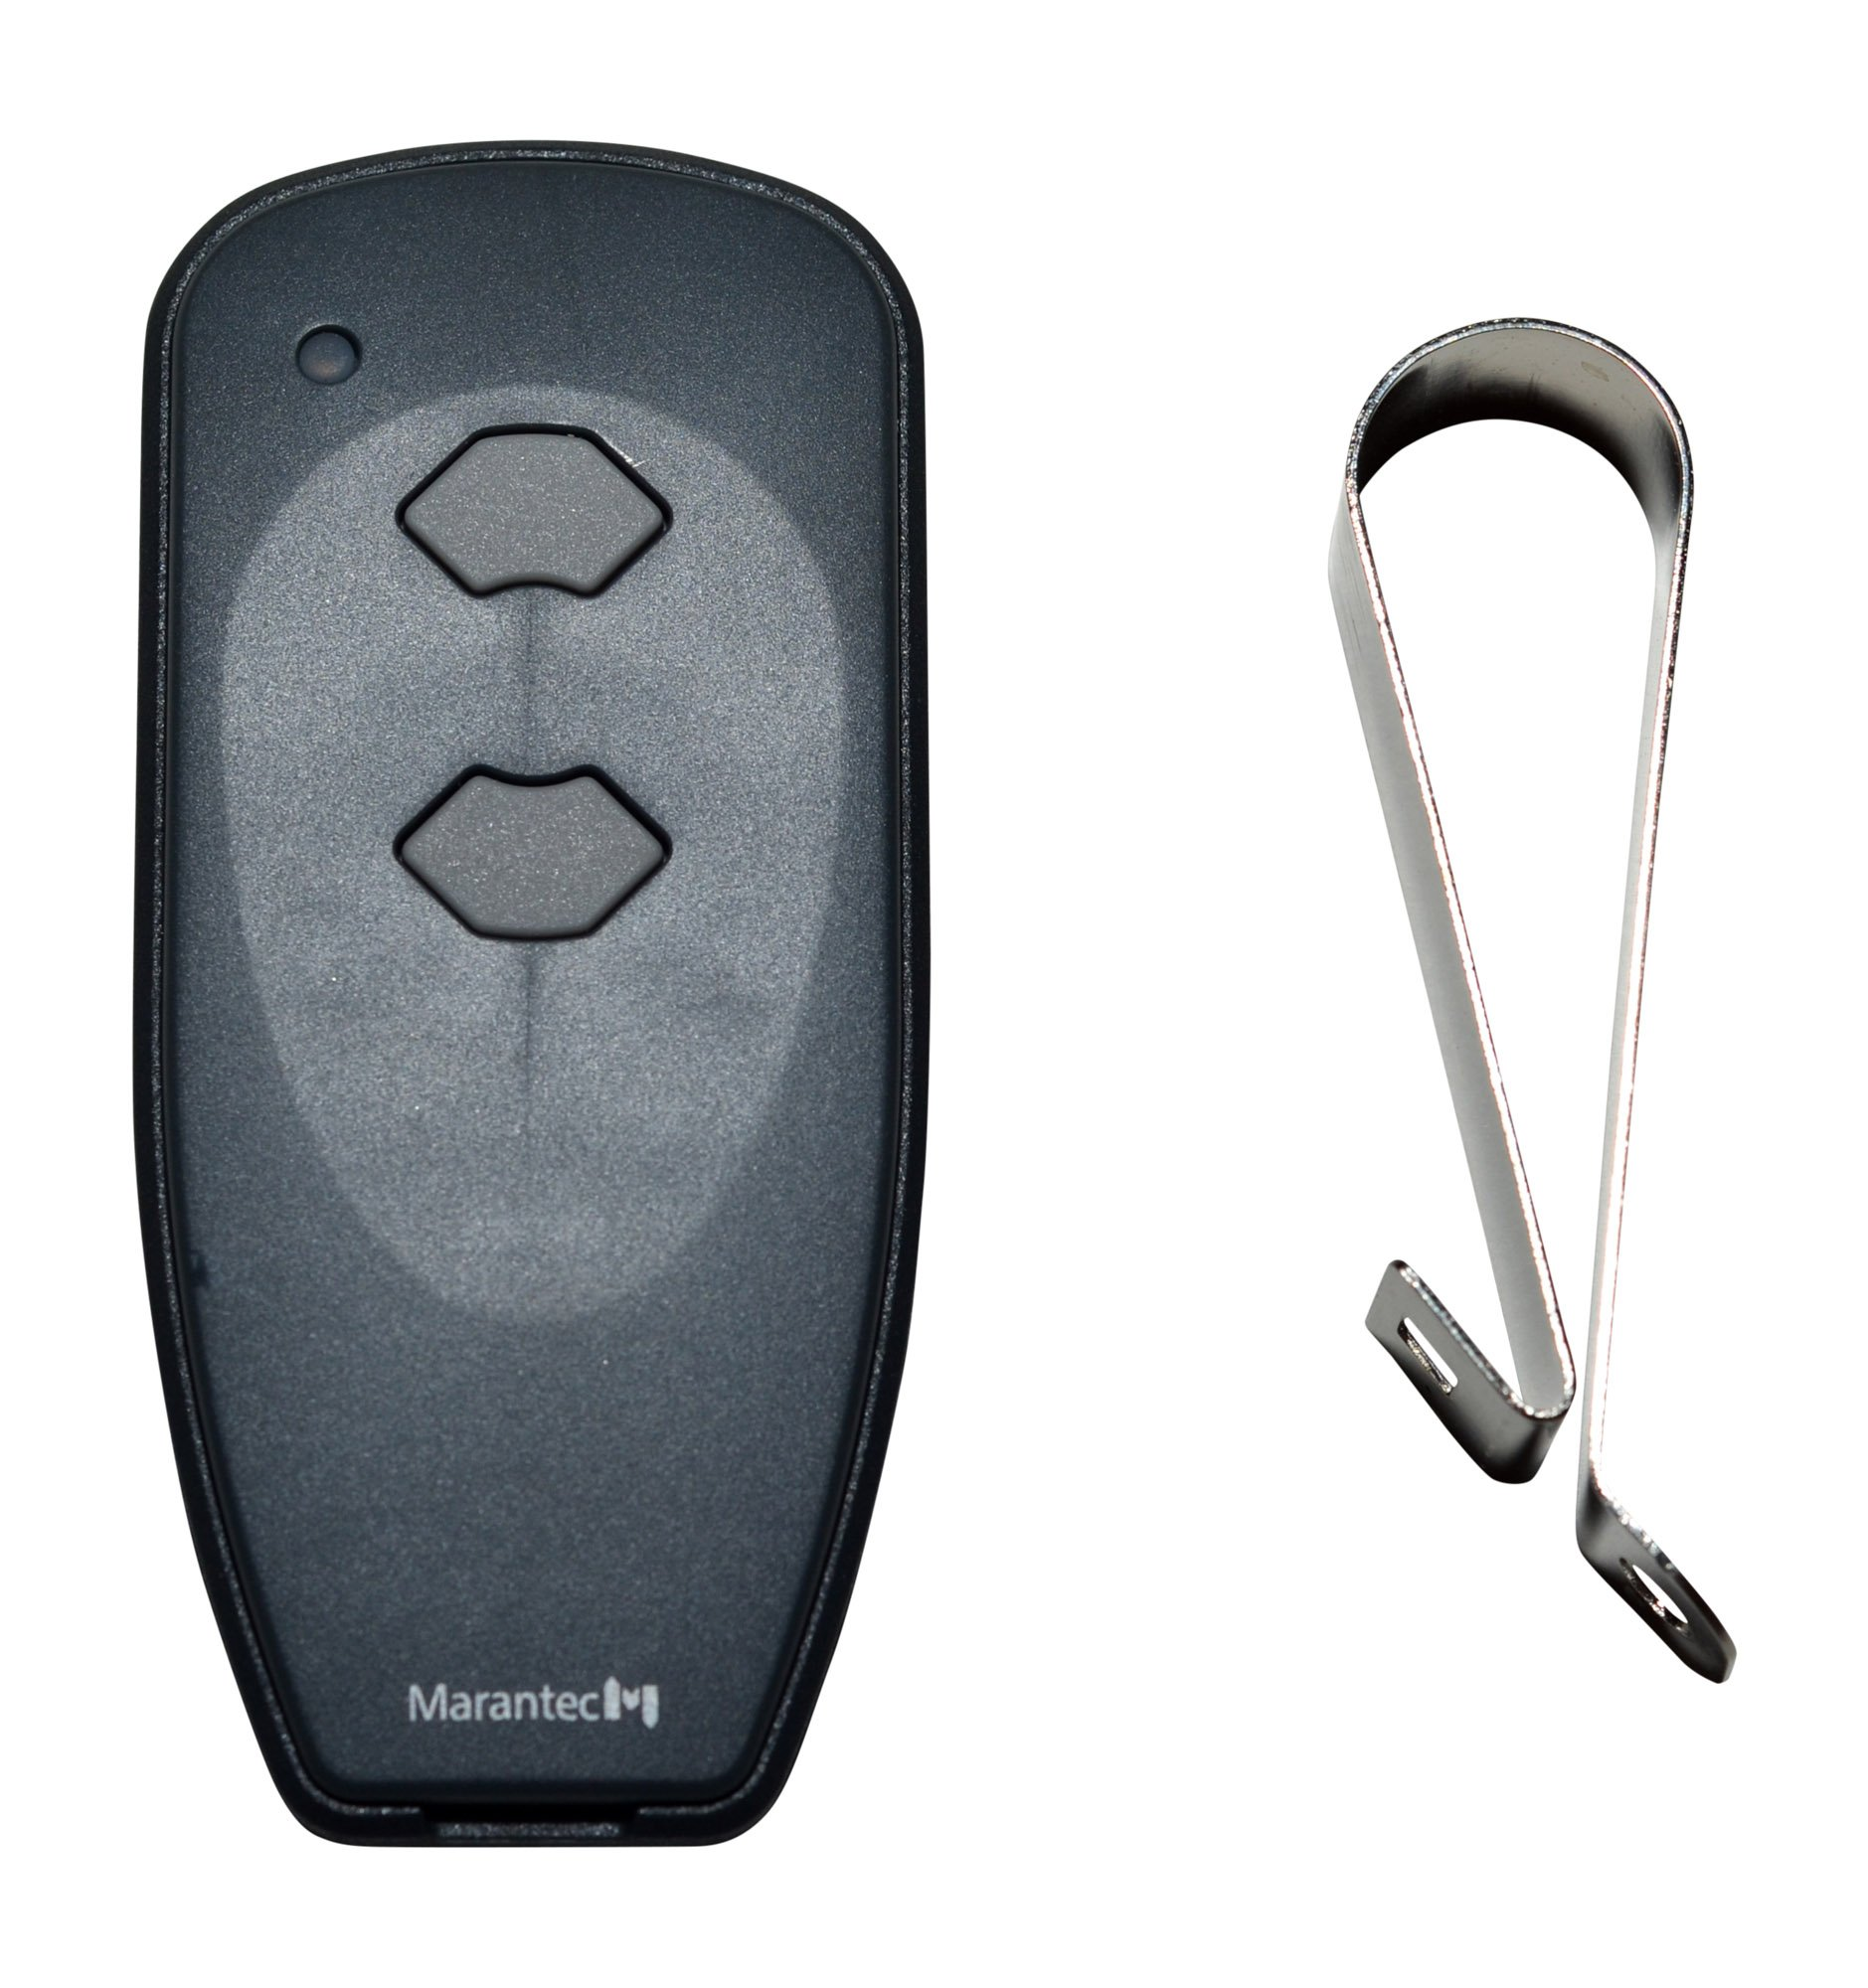 Marantec M3-2312 (315 MHz) 2-button Garage Door Opener Remote